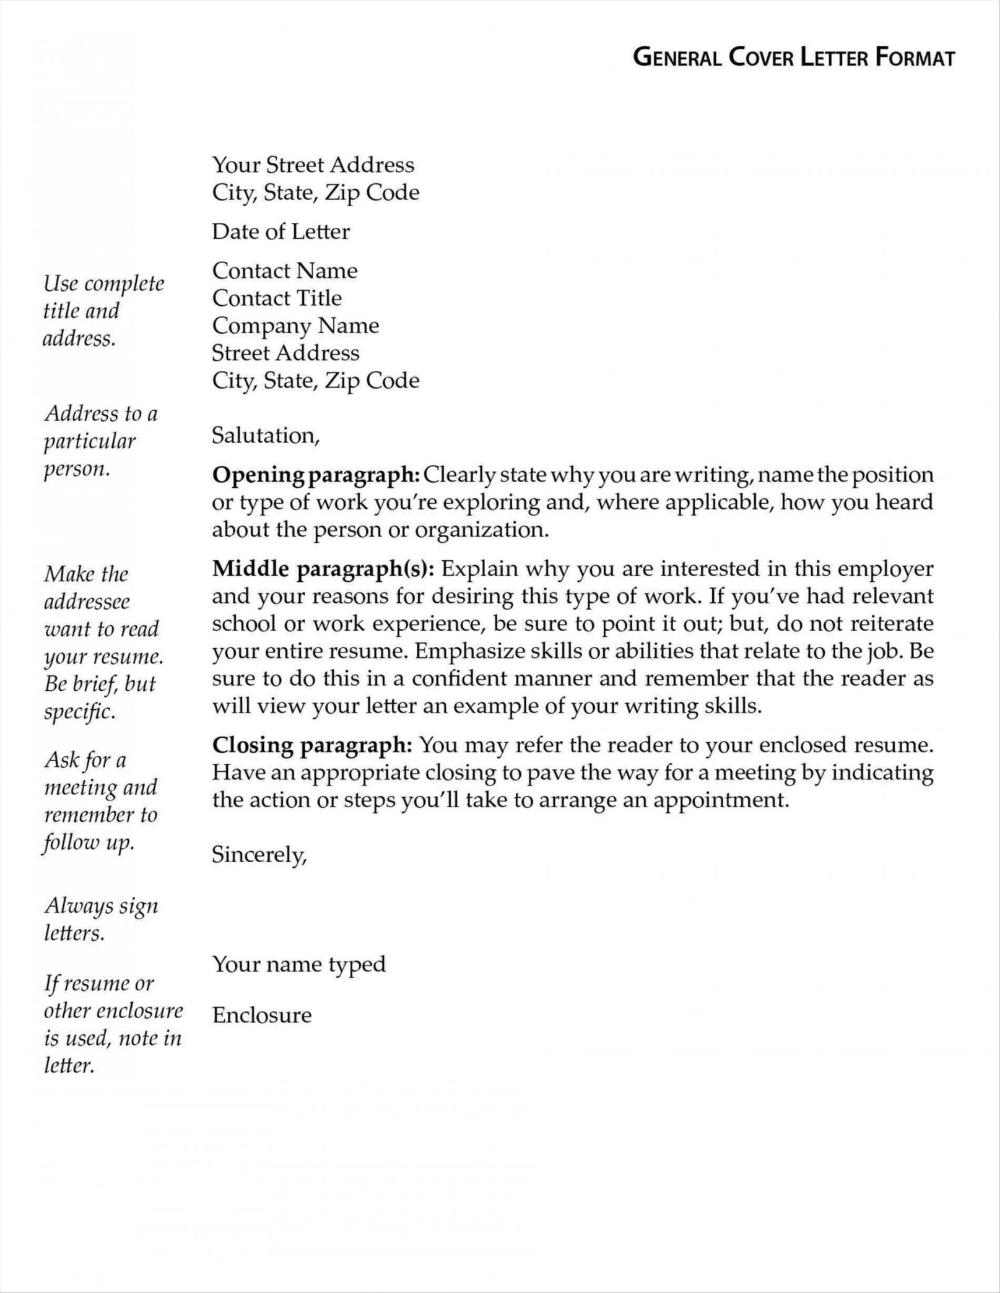 General Cover Letter Greeting from i.pinimg.com